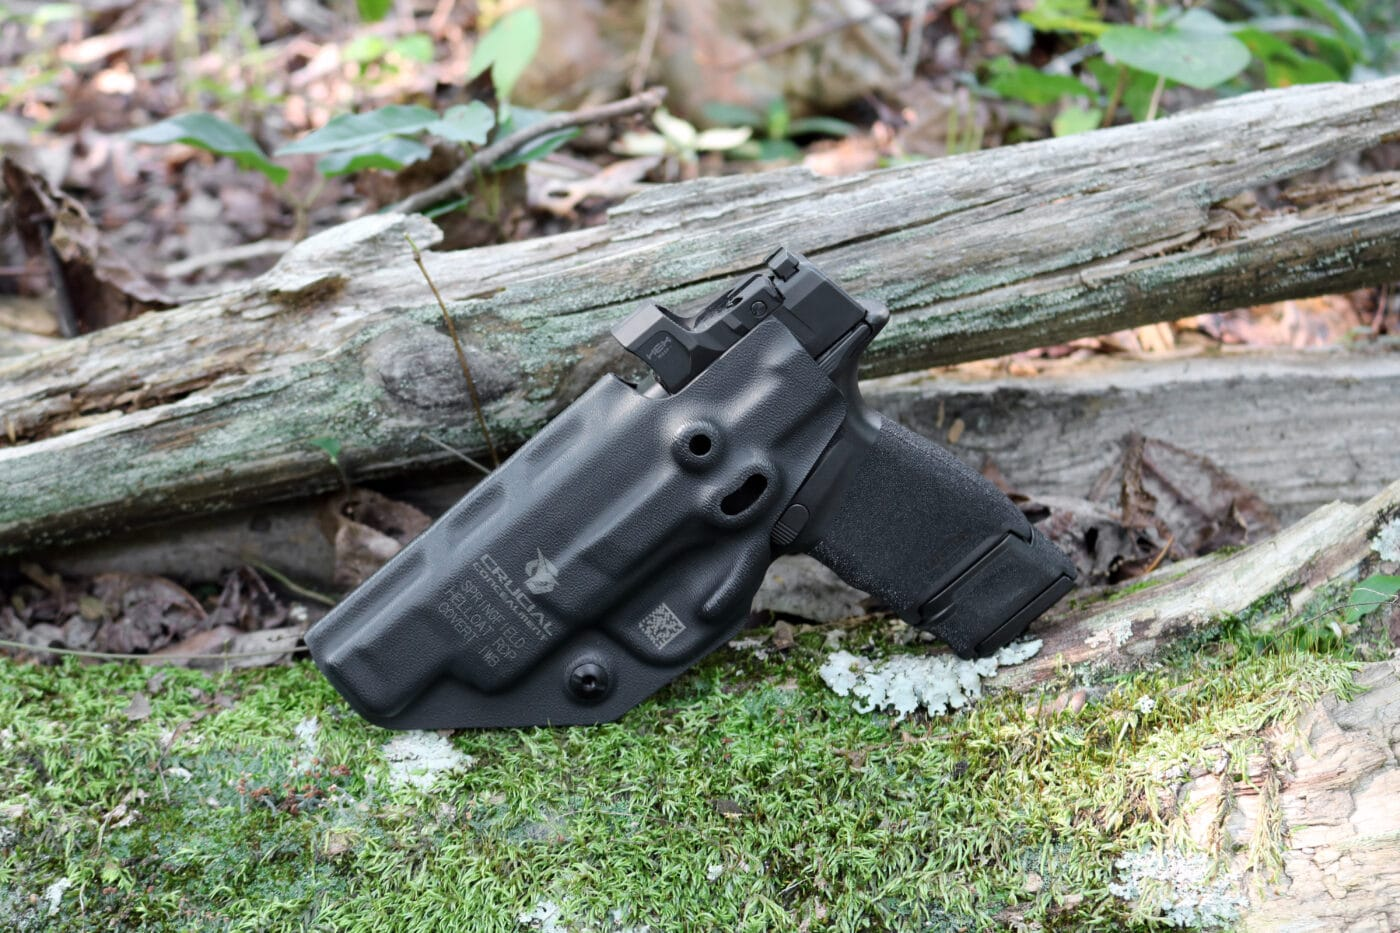 Hellcat pistol in Crucial Concealment Covert holster on moss and wood